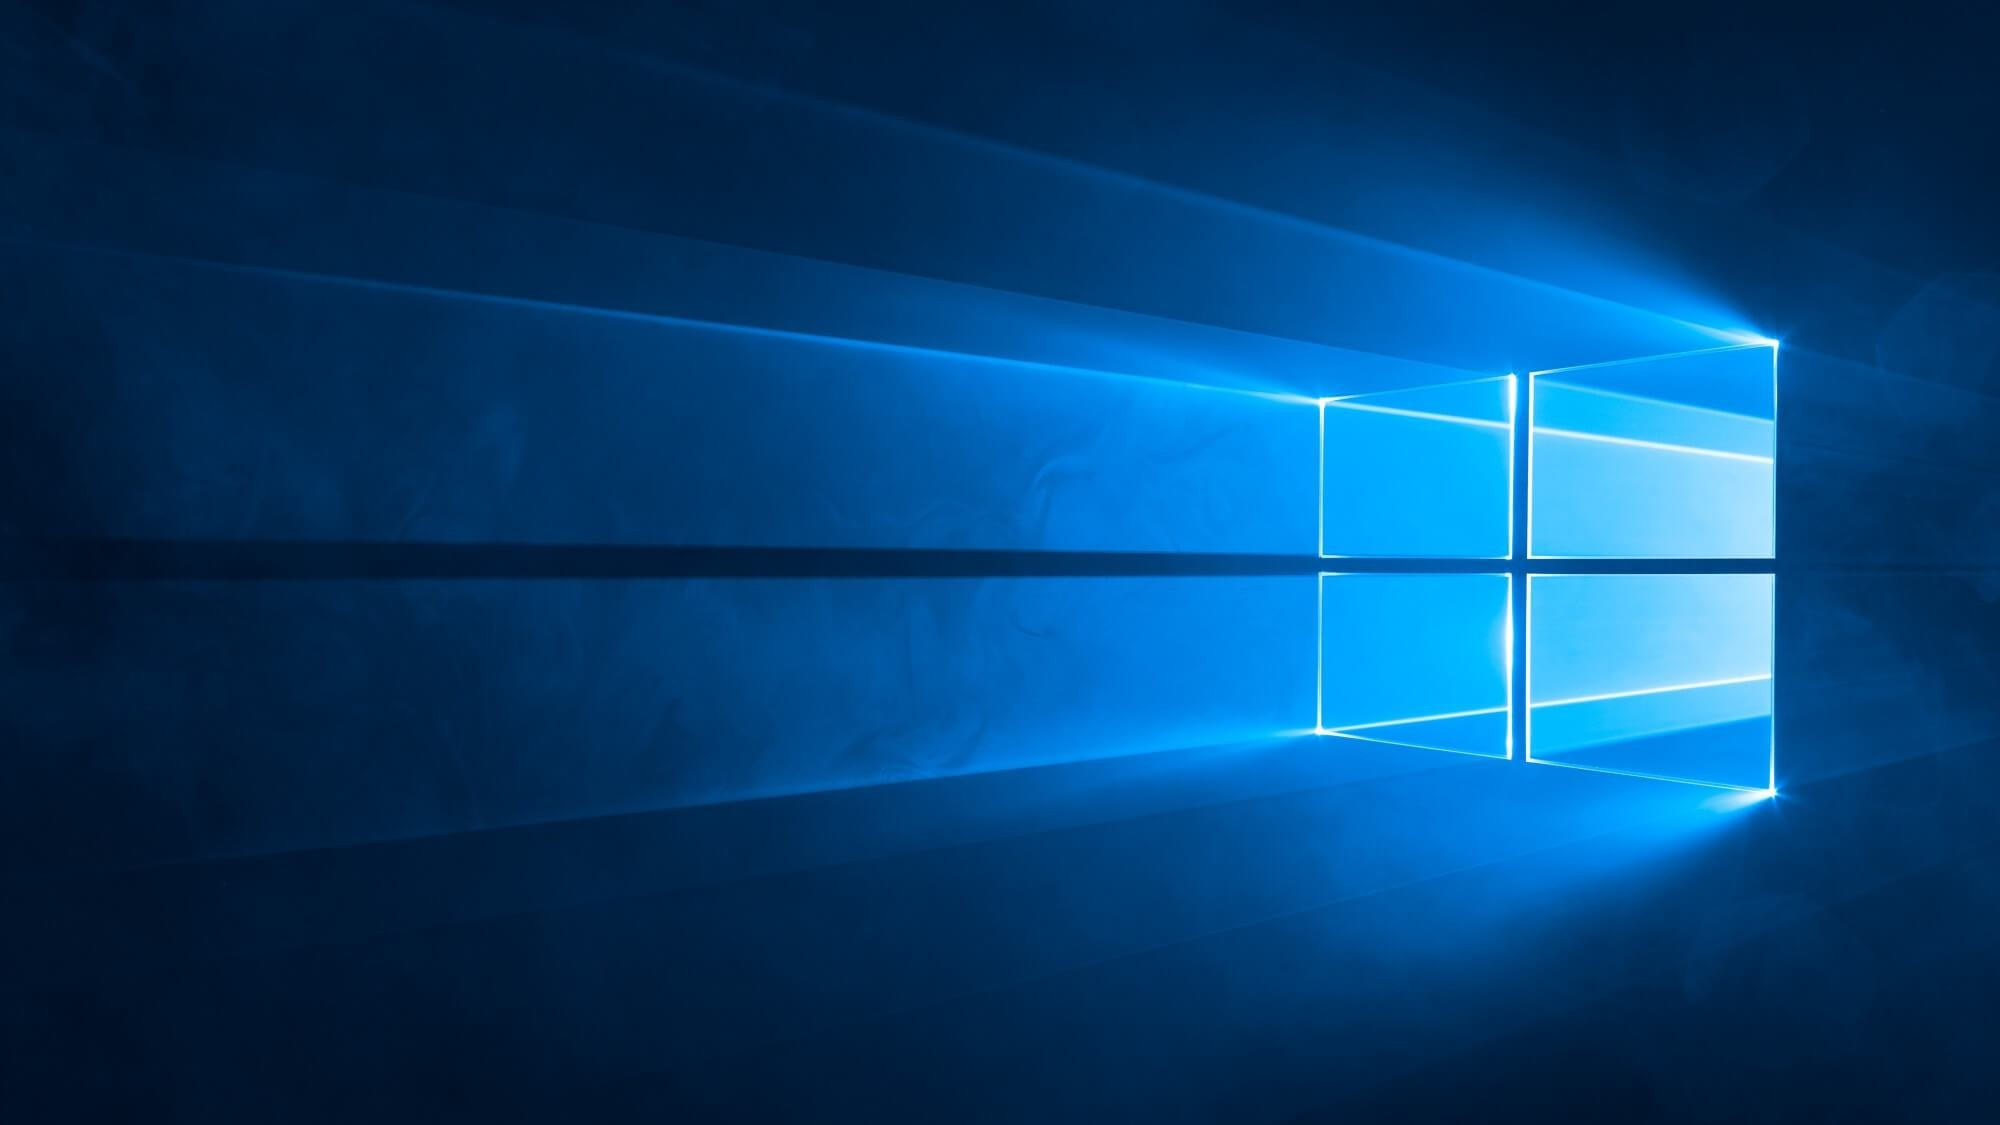 Windows 10 is now on over 270 million devices   VentureBeat   Dev   by Emil  Protalinski